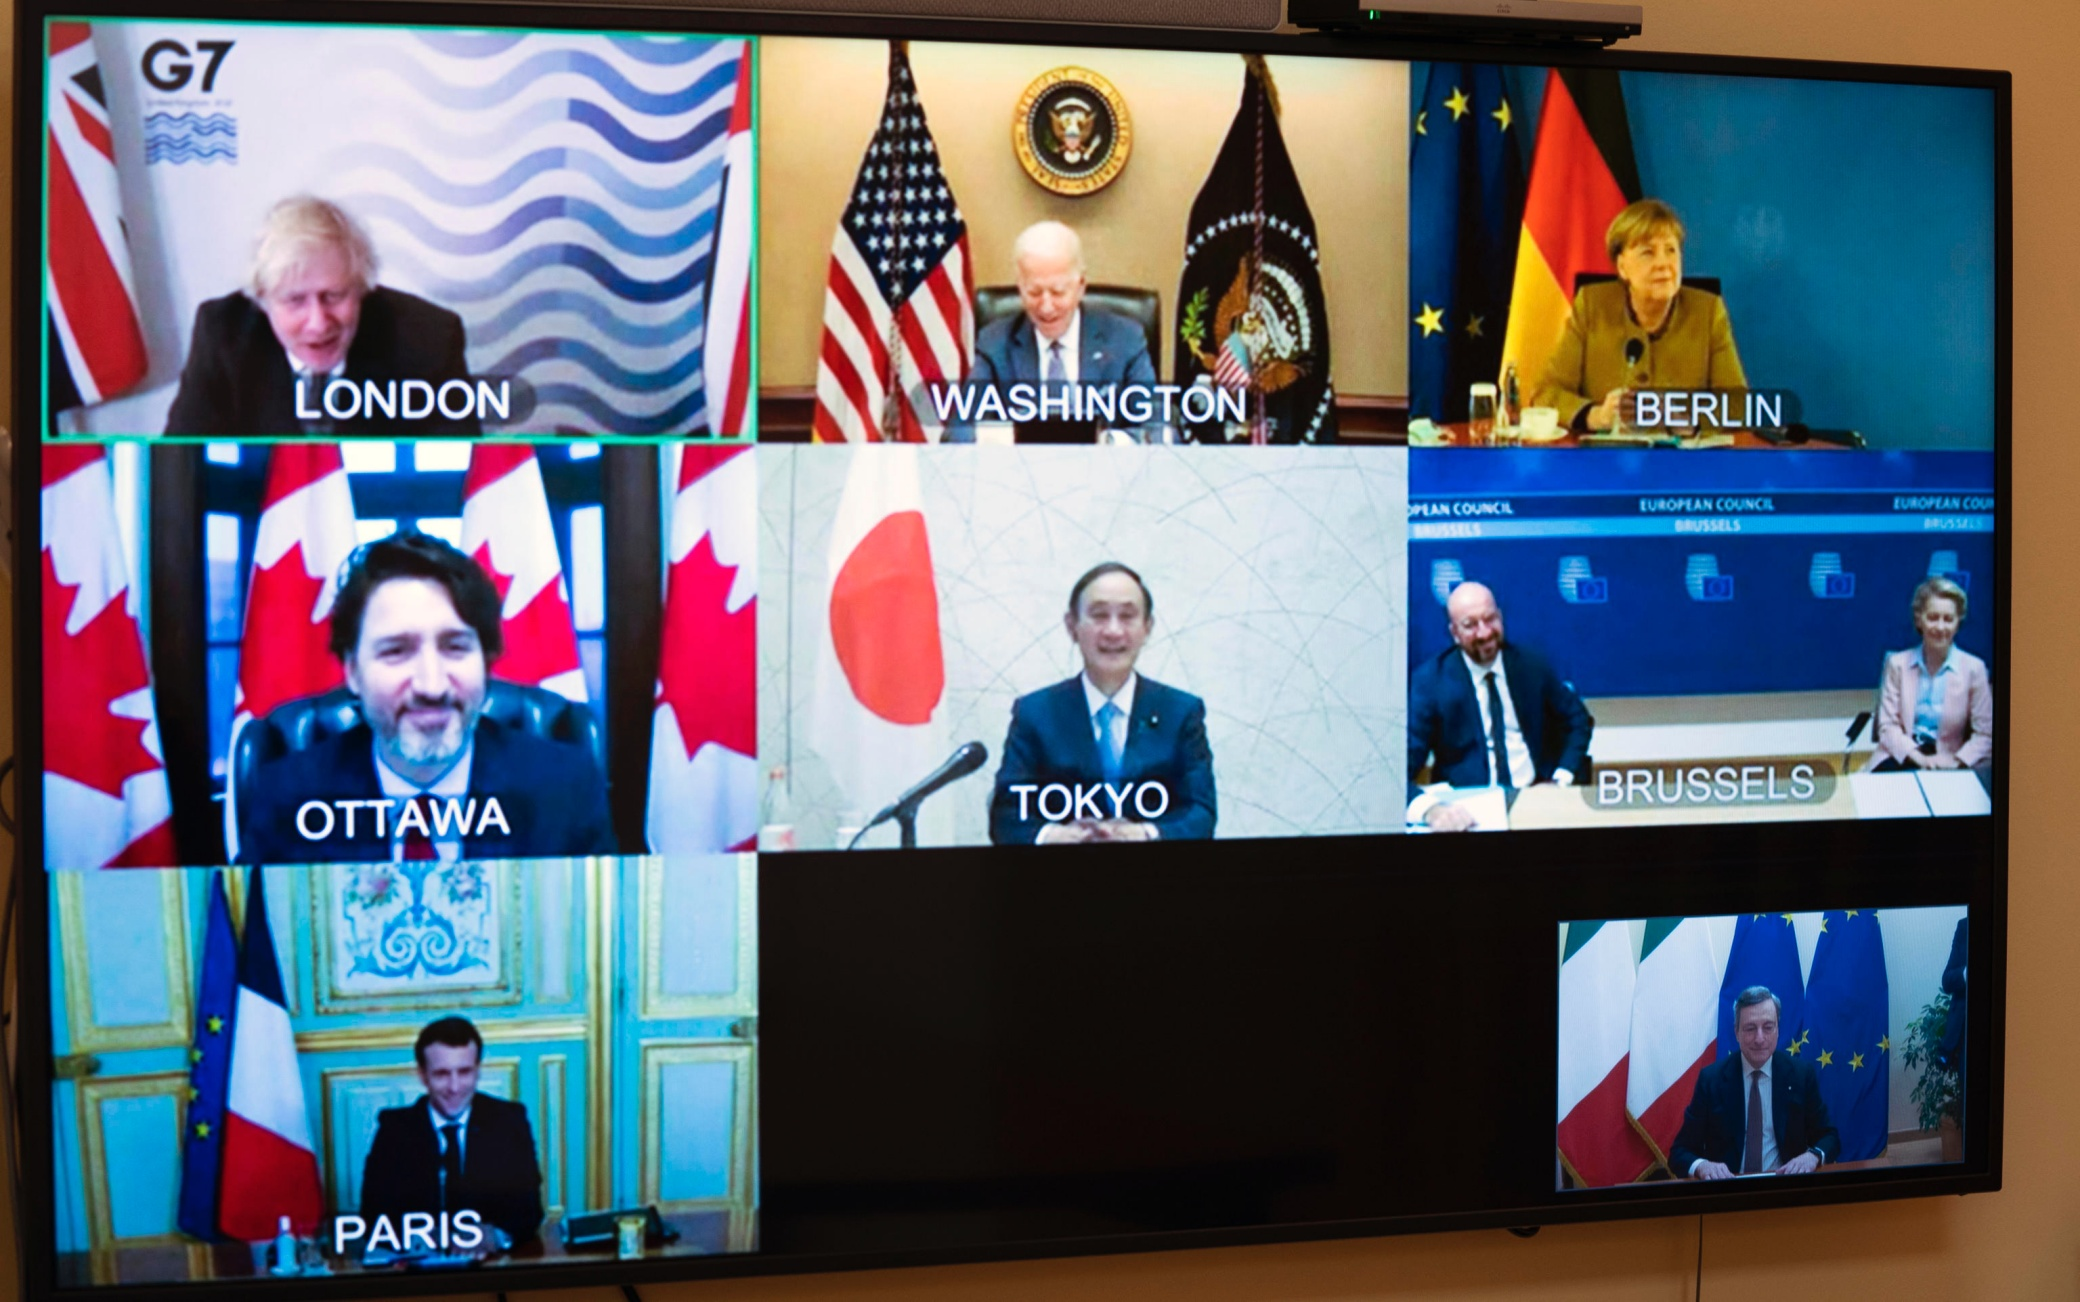 G7: What are they and what are the member states